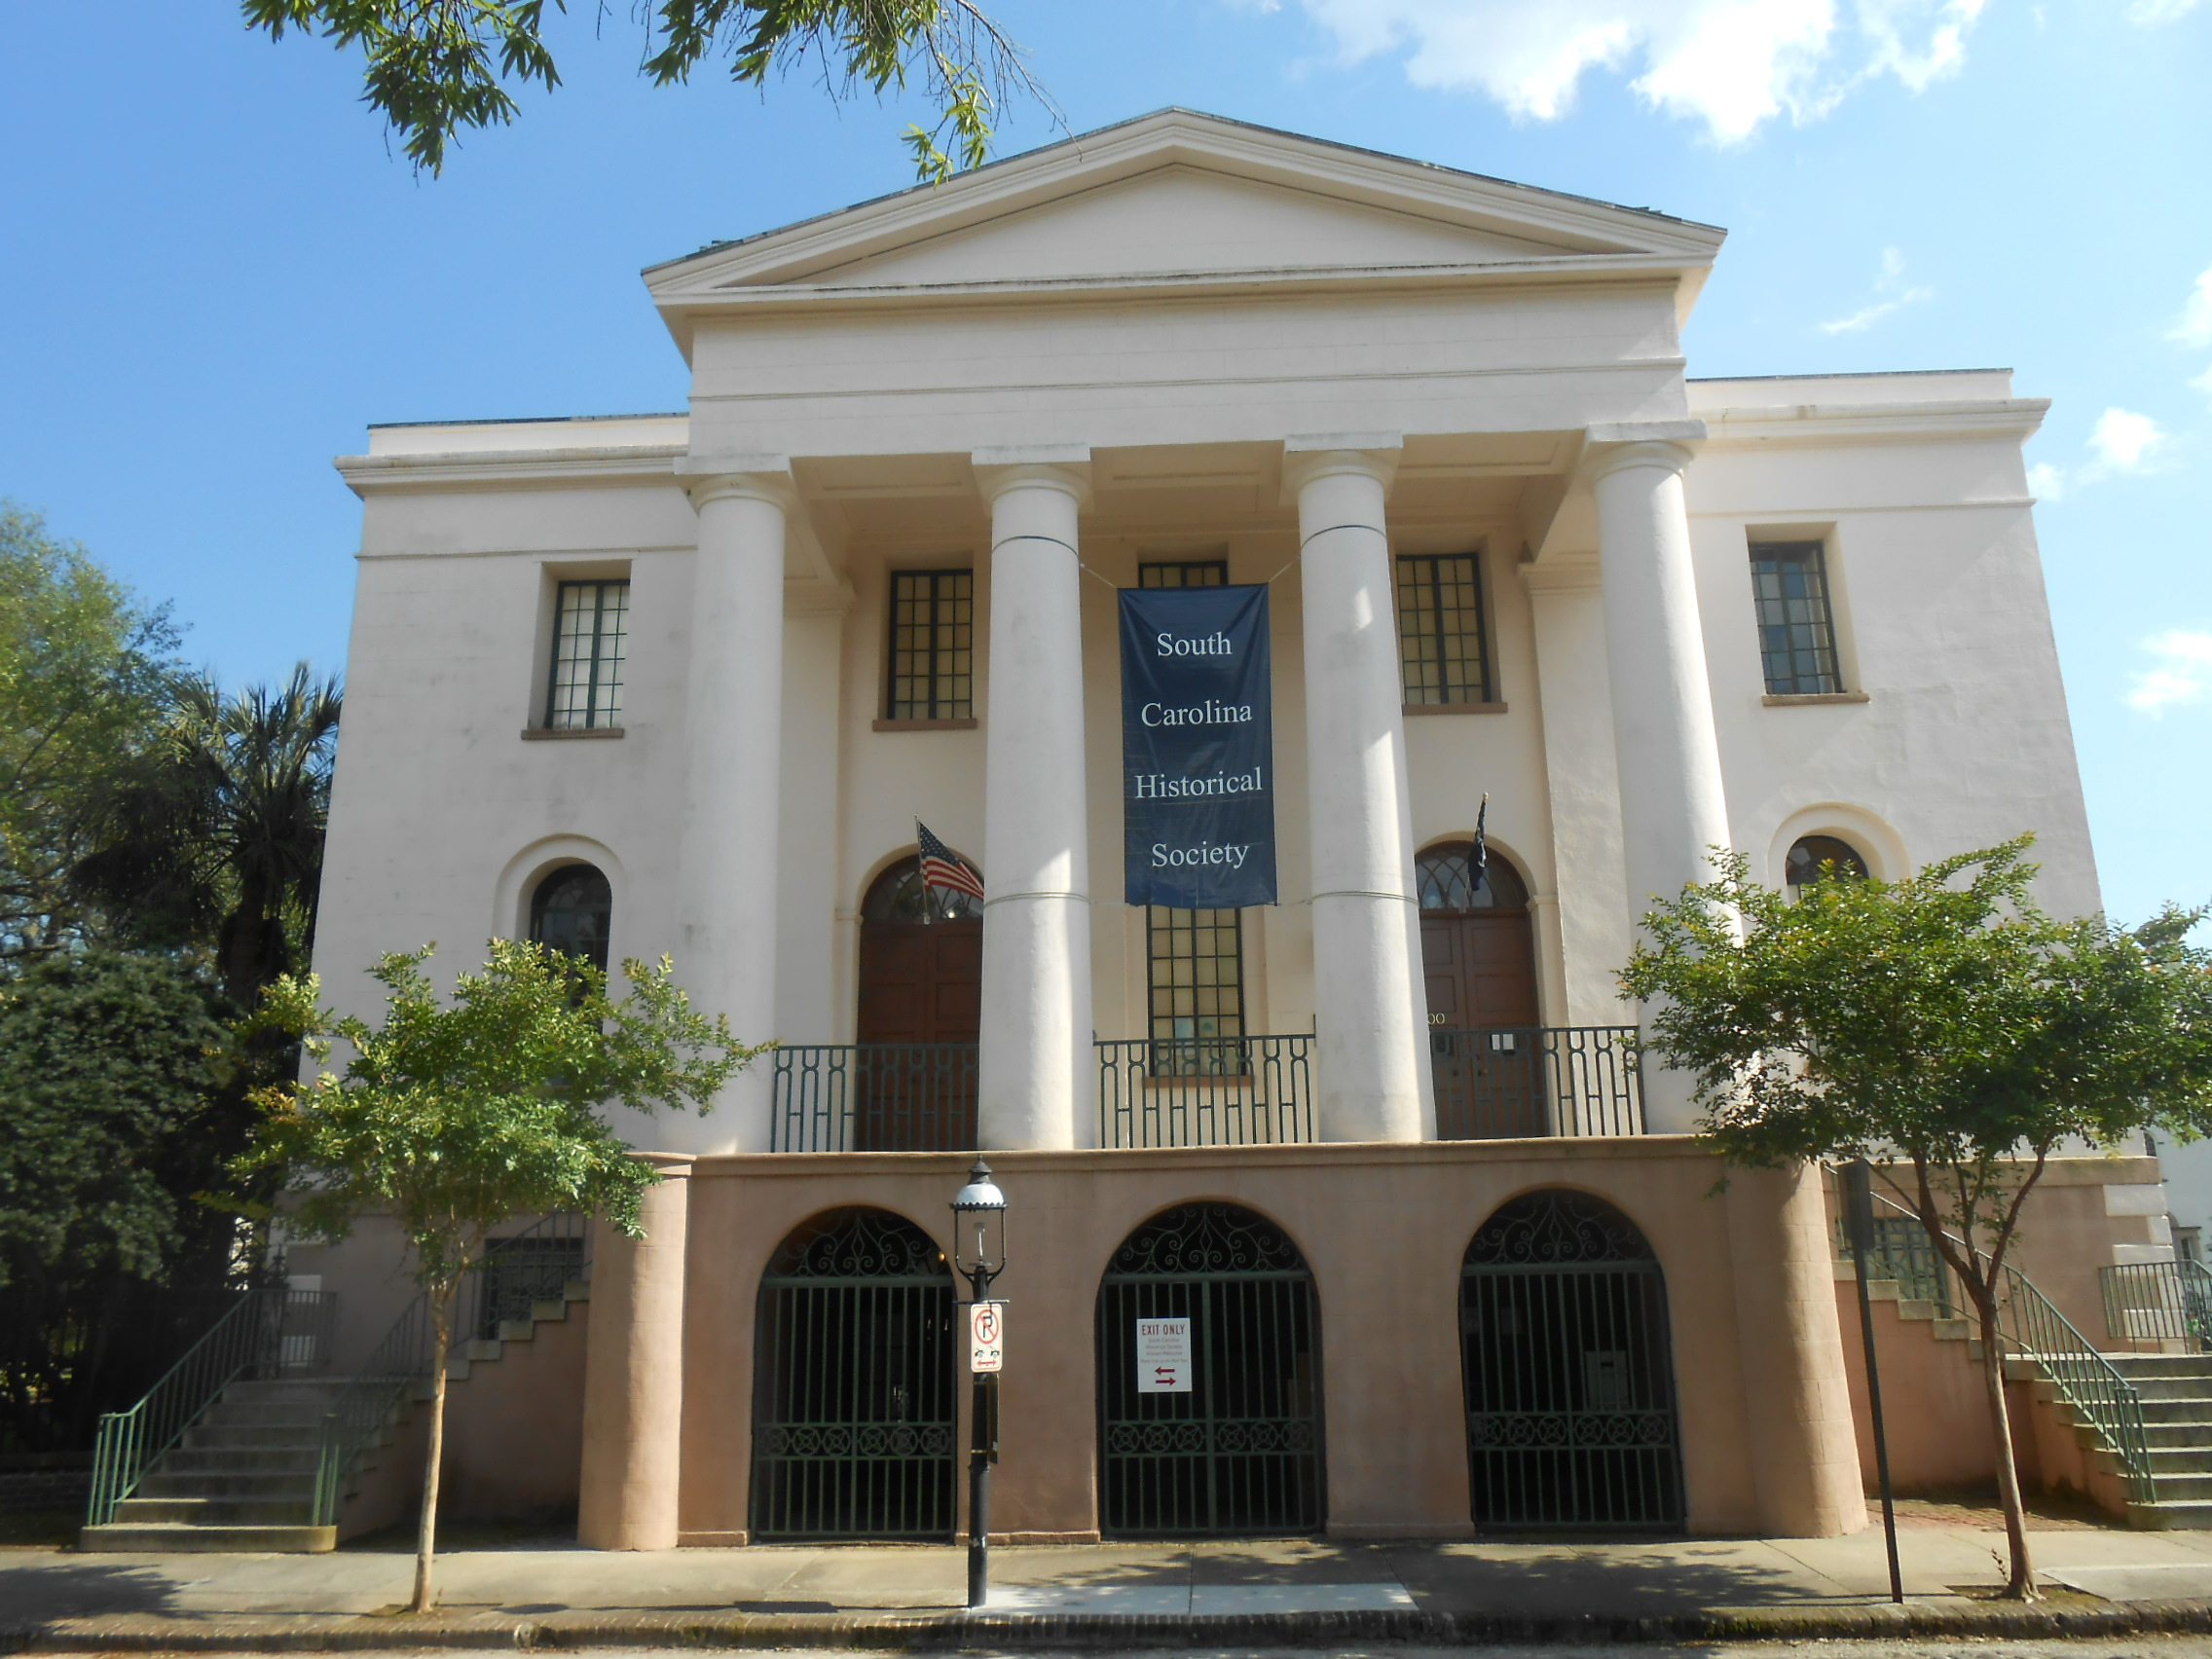 south carolina history beginnings The history of charleston, south carolina, is one of the longest and most diverse of any community in the united states, spanning hundreds of years of physical settlement beginning in 1607 through modern times.